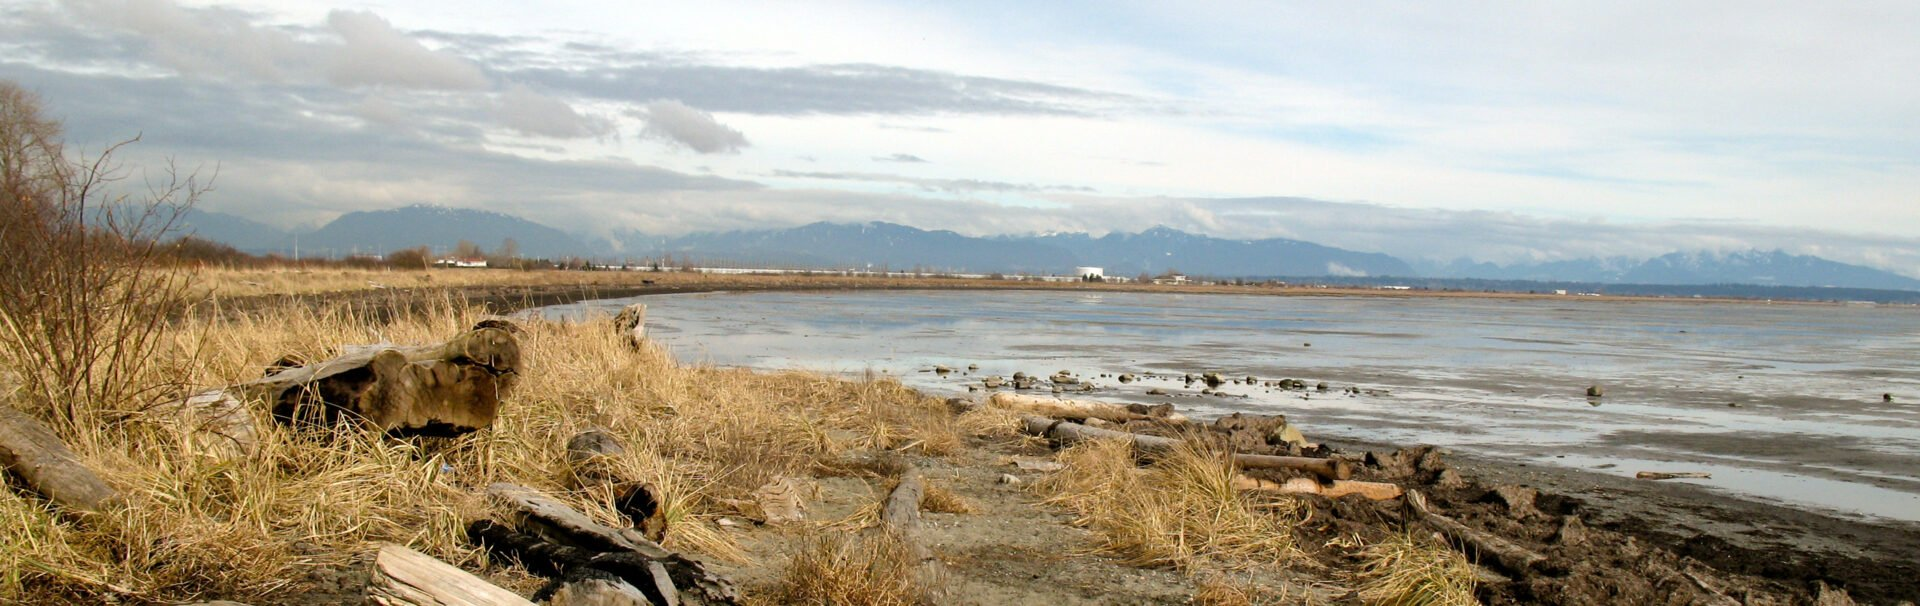 Bird watching at Boundary Bay Regional Park